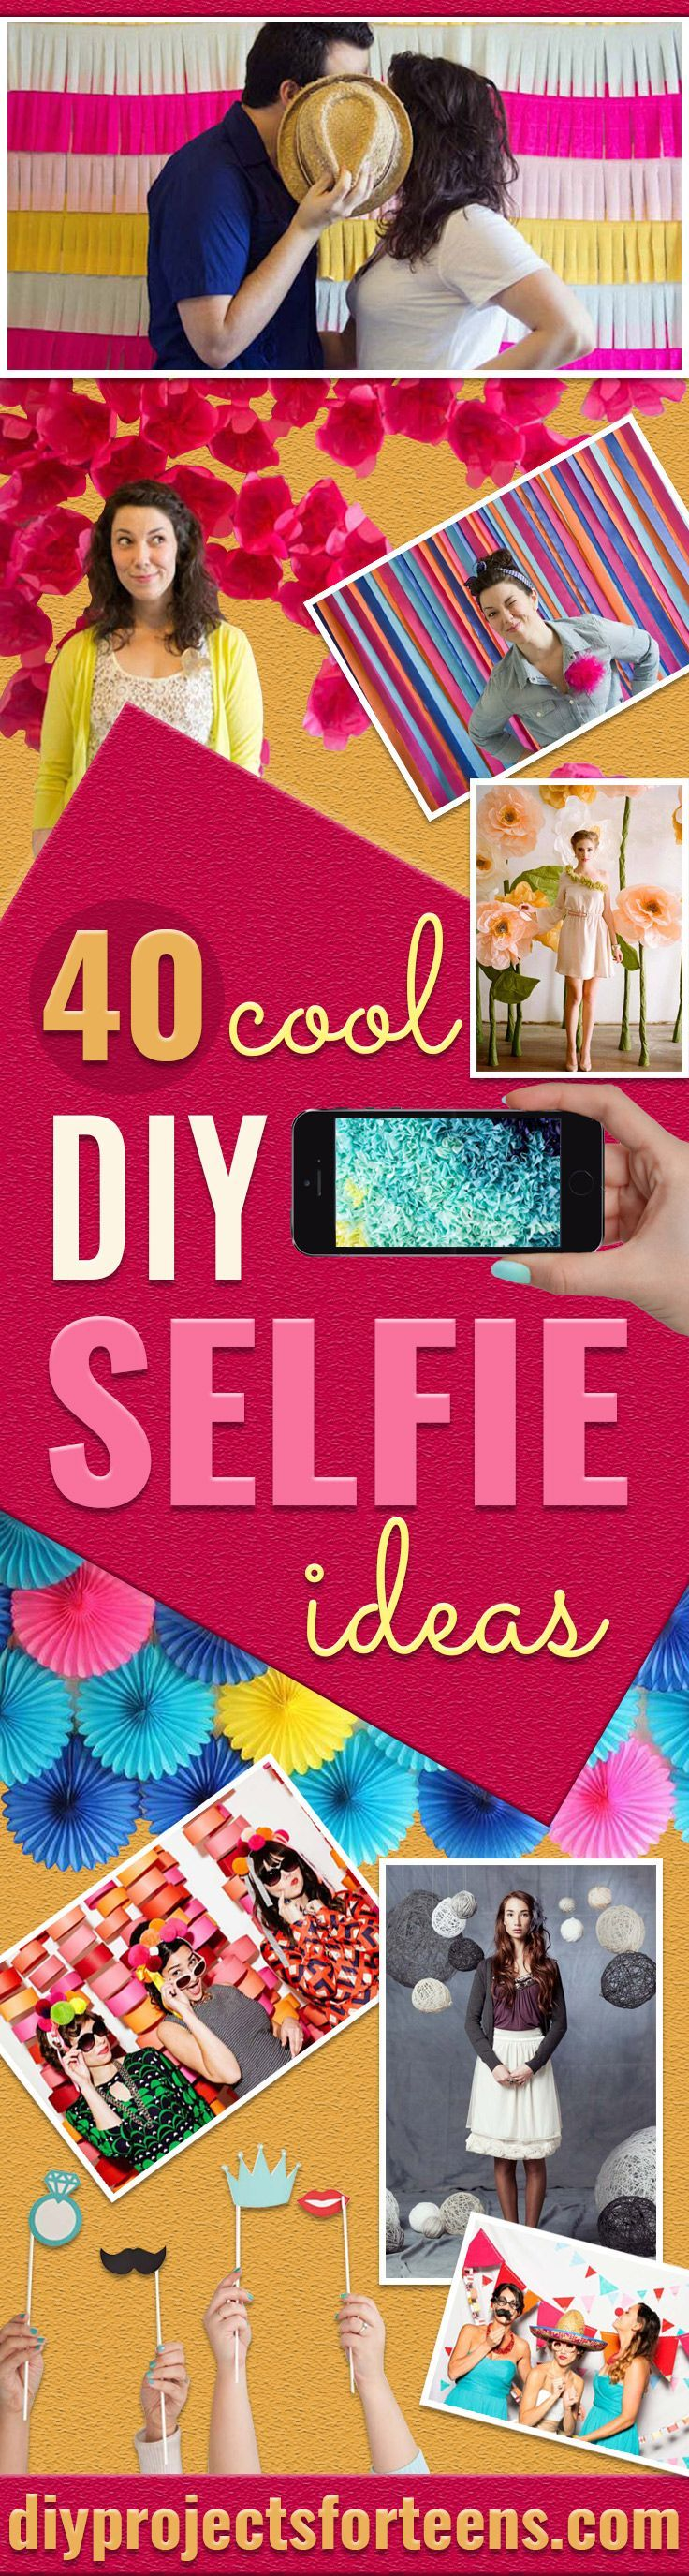 best 25 creative selfie ideas ideas on pinterest